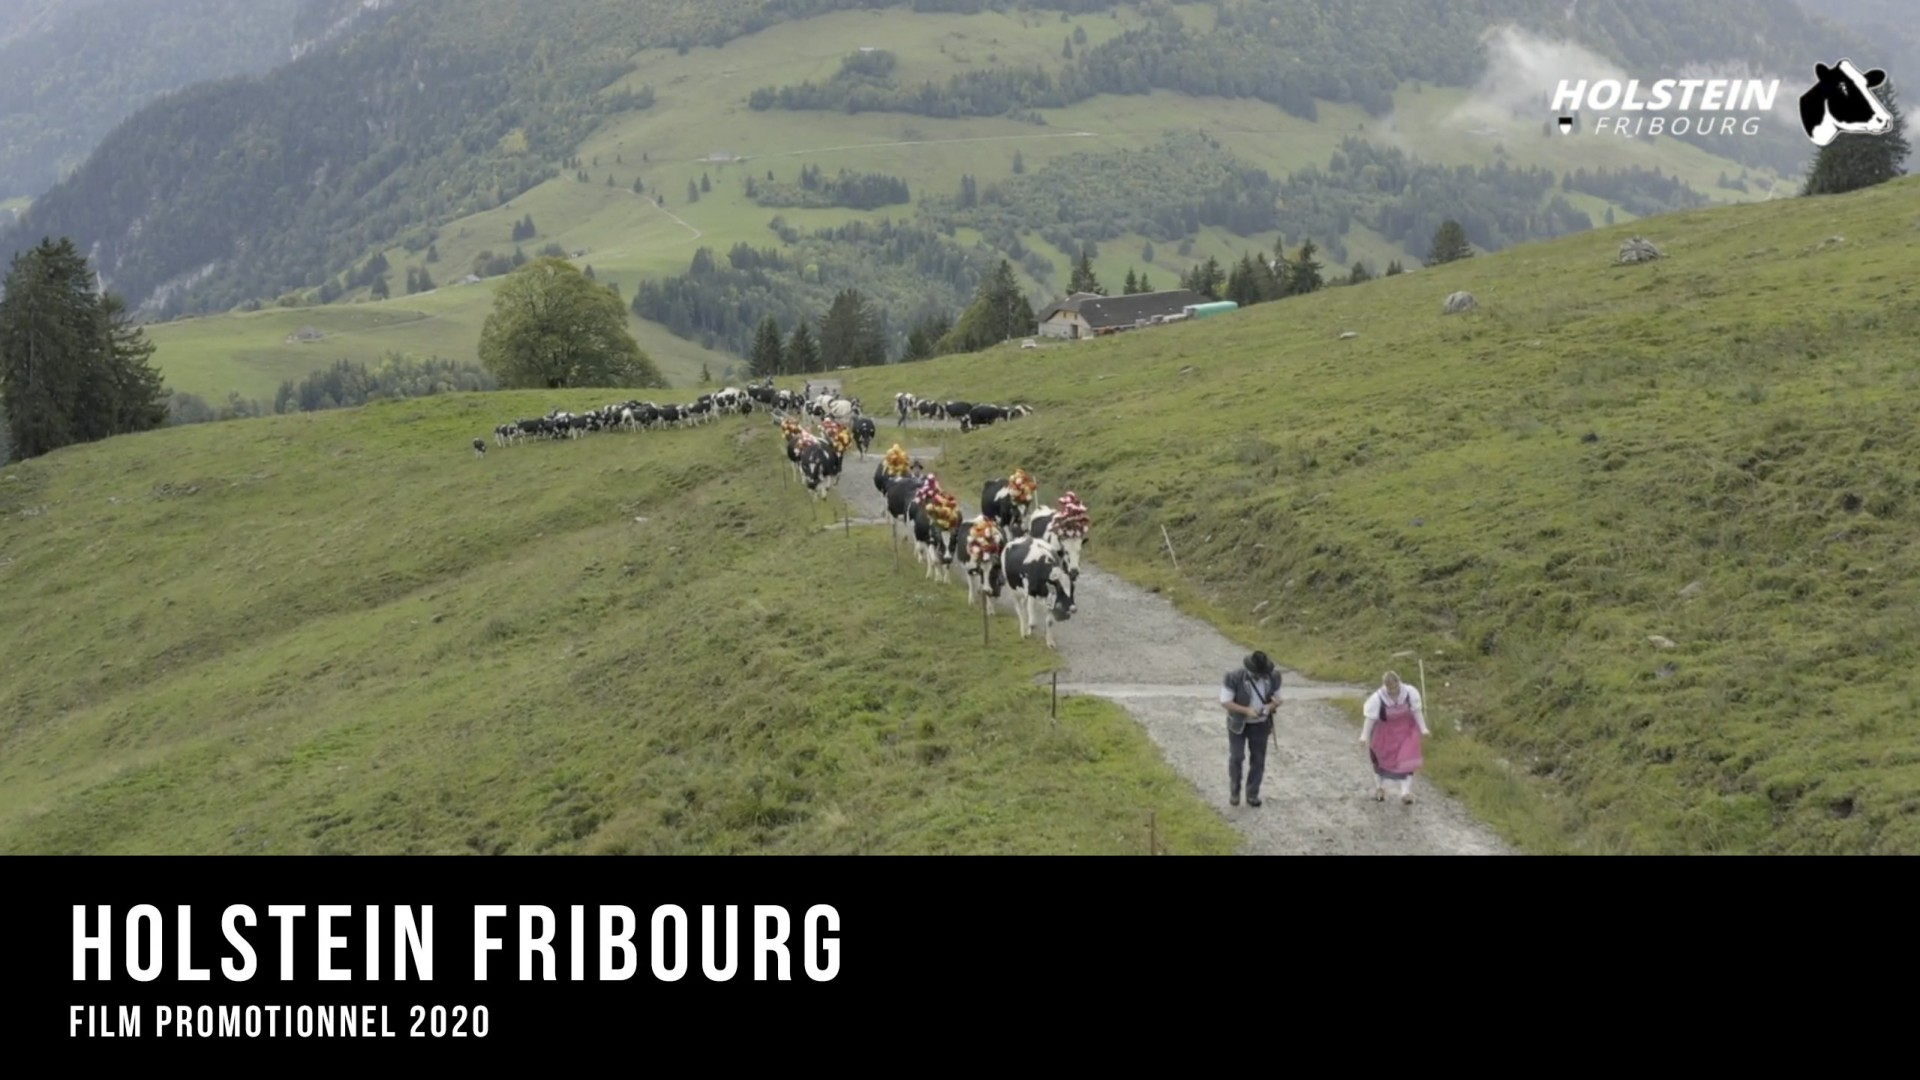 Holstein Fribourg, film promotionnel 2020